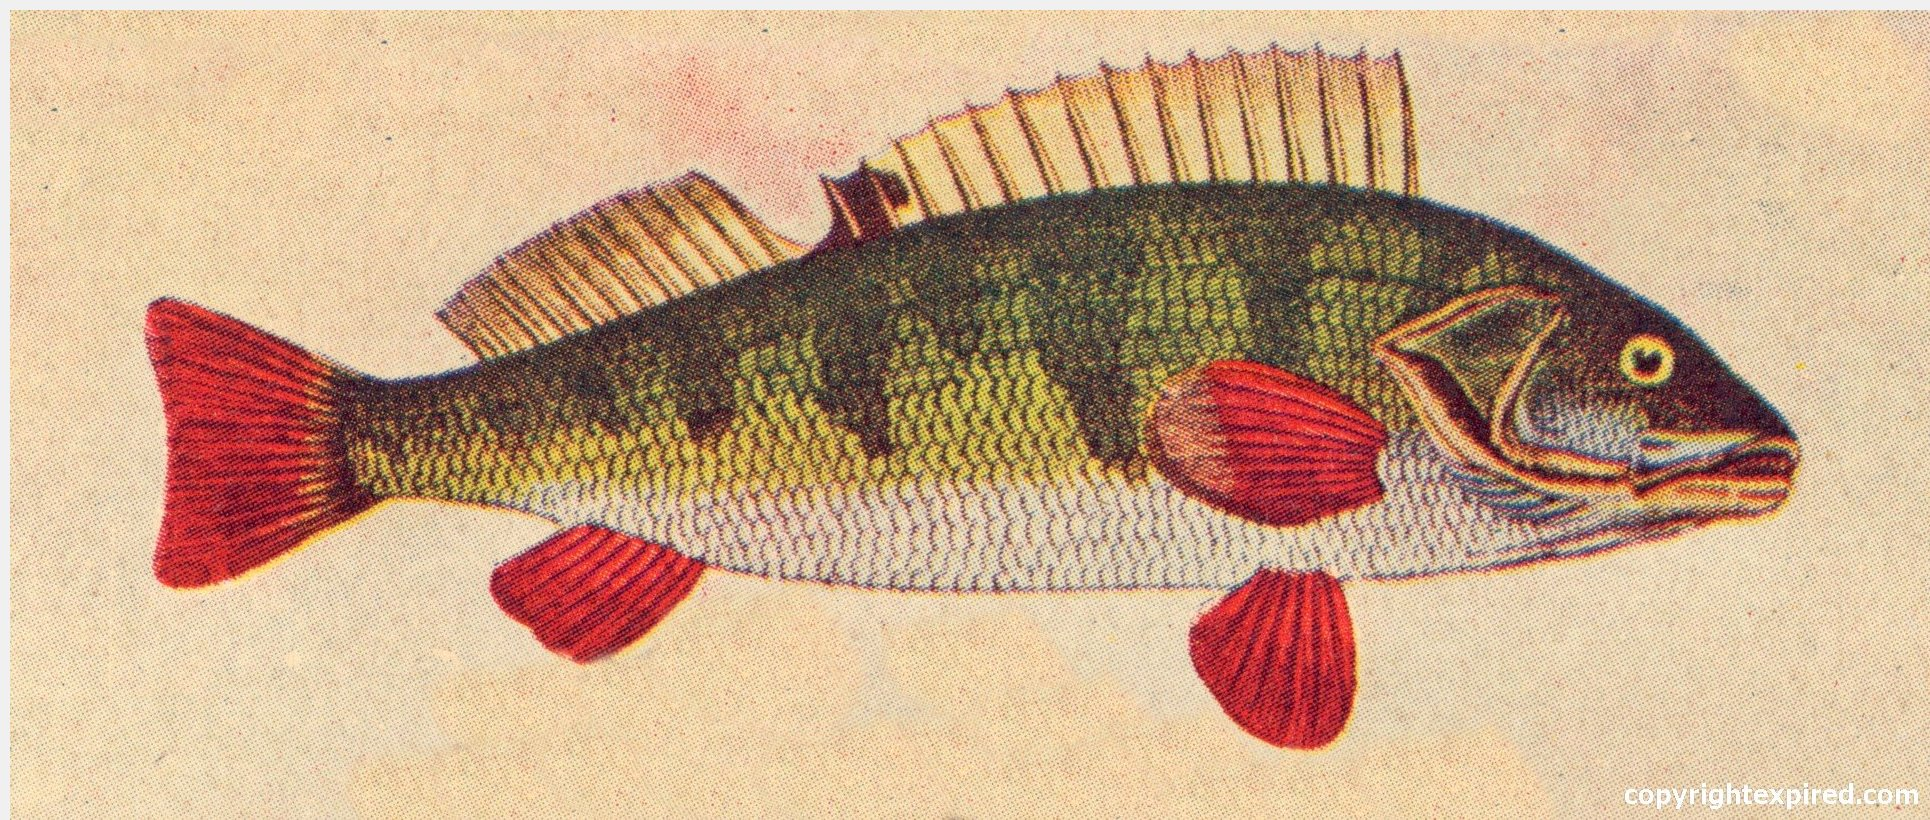 ... Illustrations for Crafts, School, Brochures, Clip Art - Common Perch